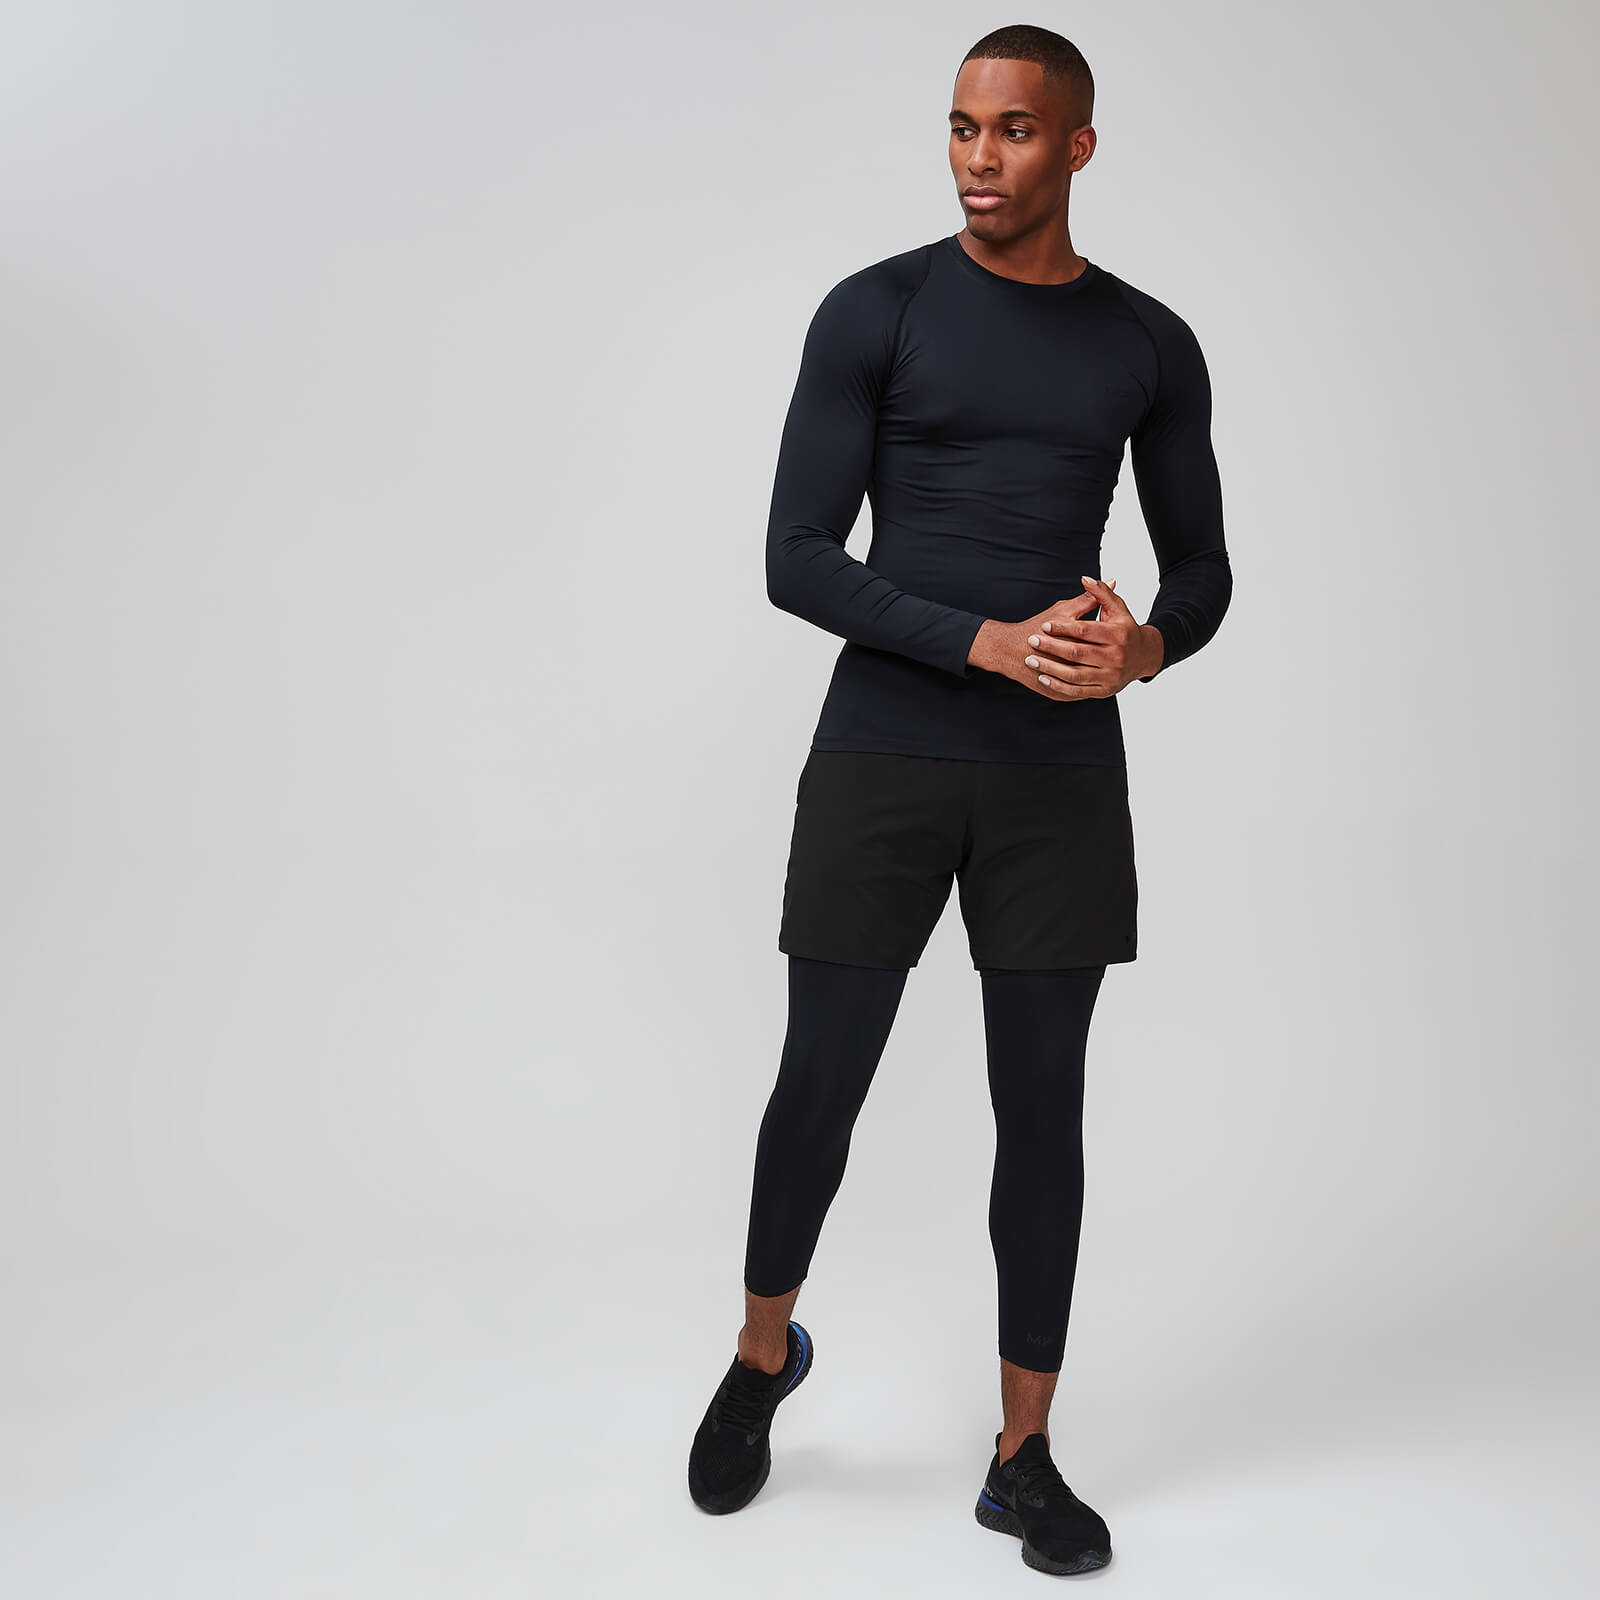 MP Base Layer Leggings and Long Sleeve